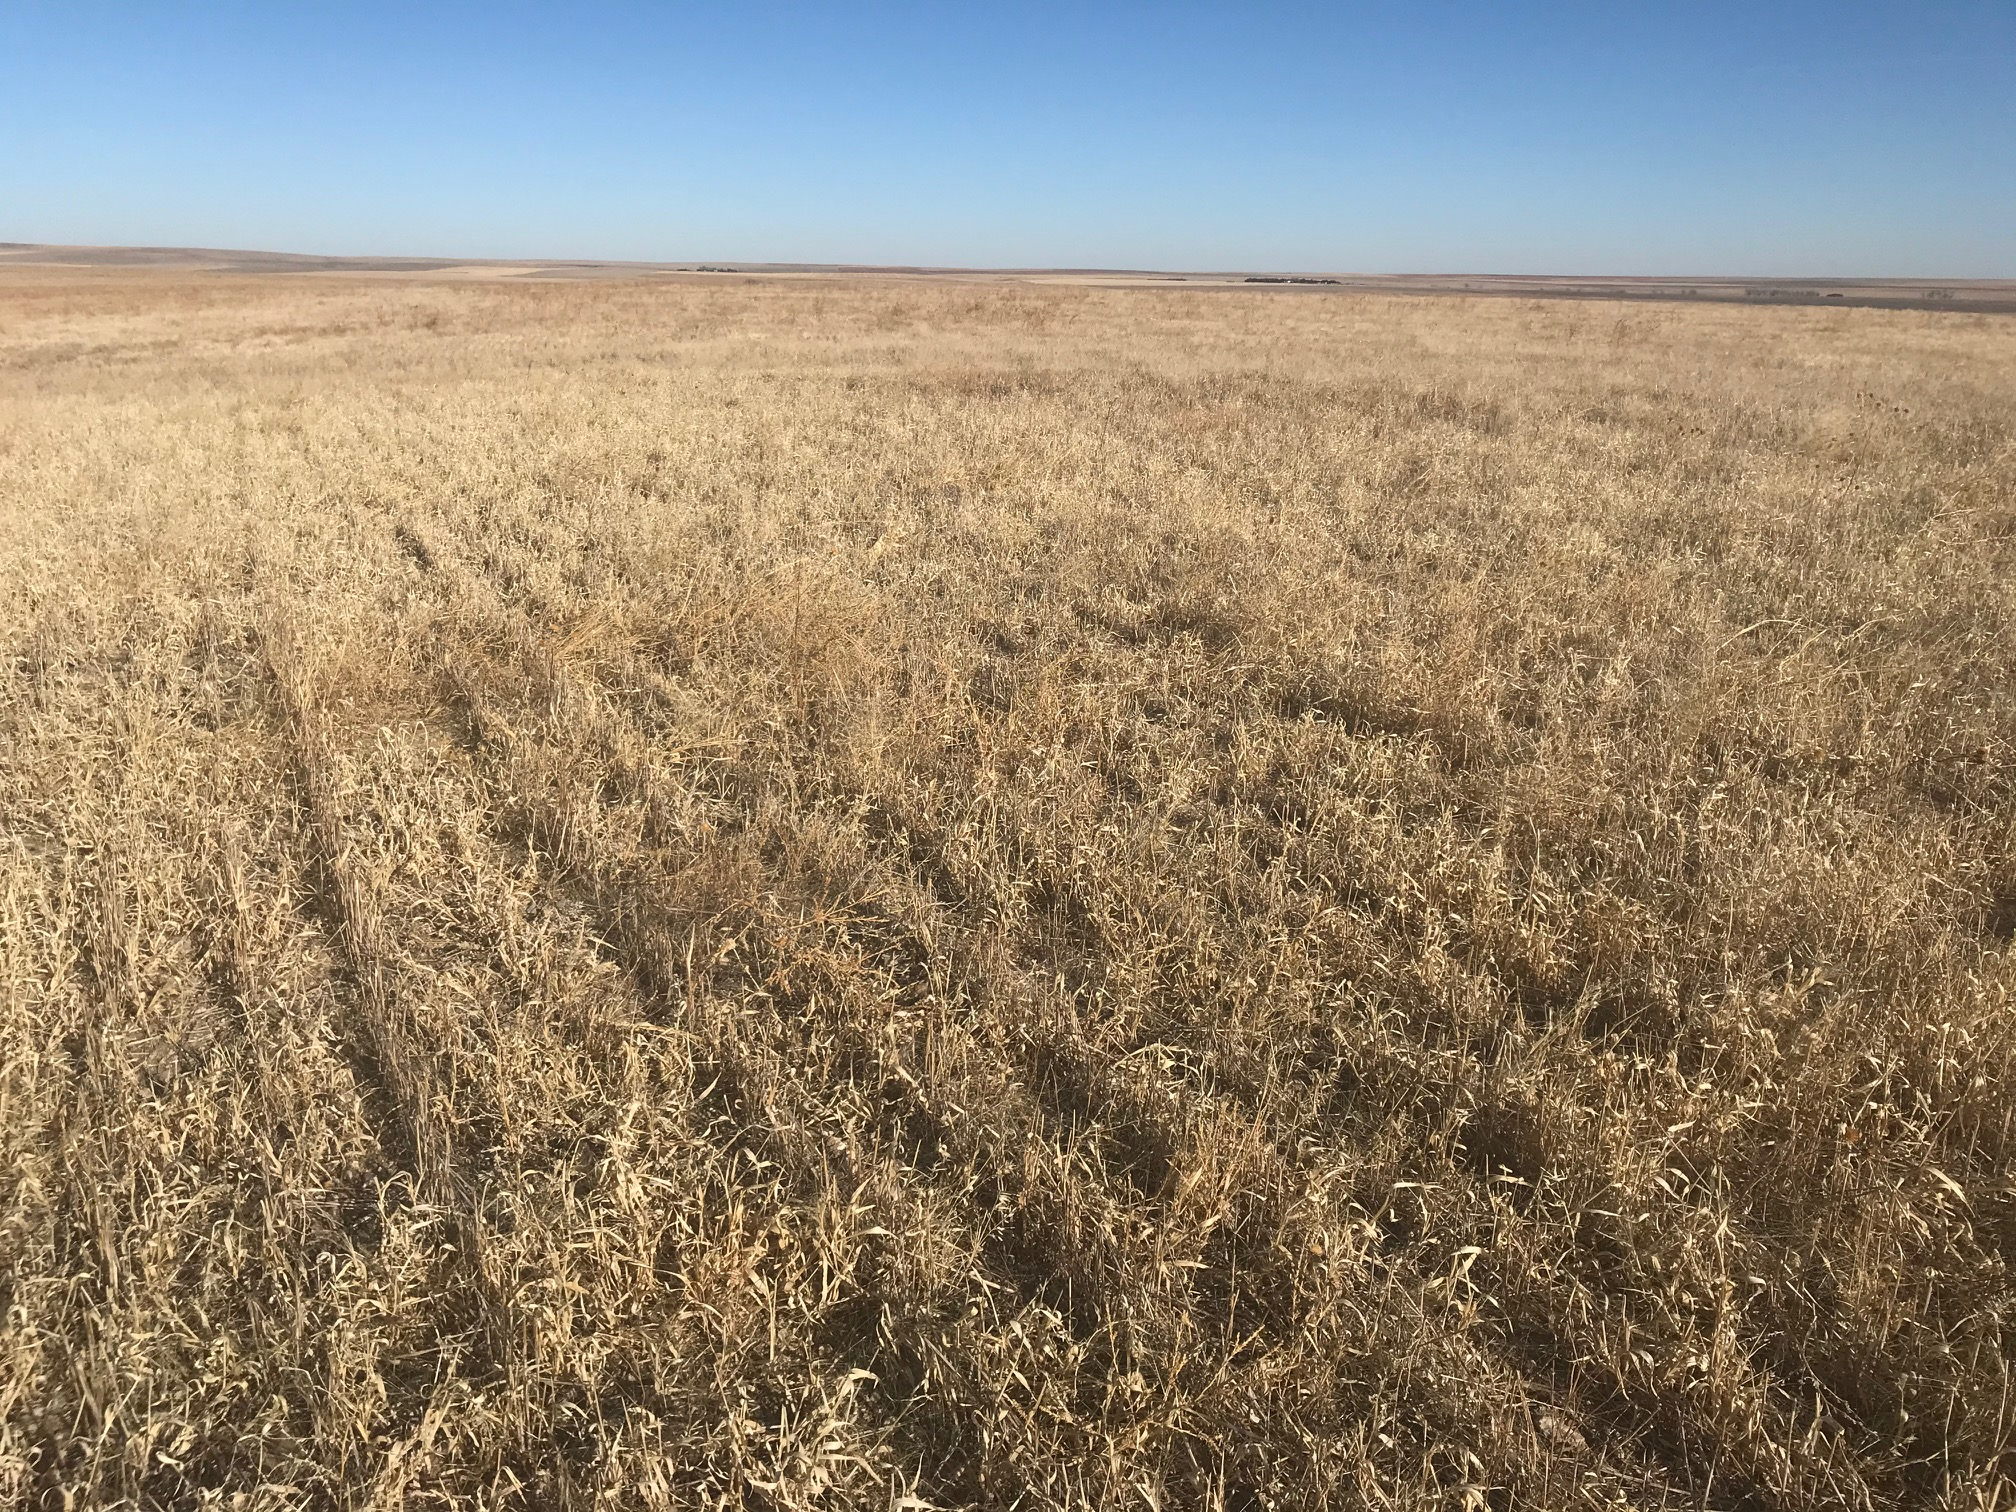 Tract-1-wheat-stubble-south-side.jpg